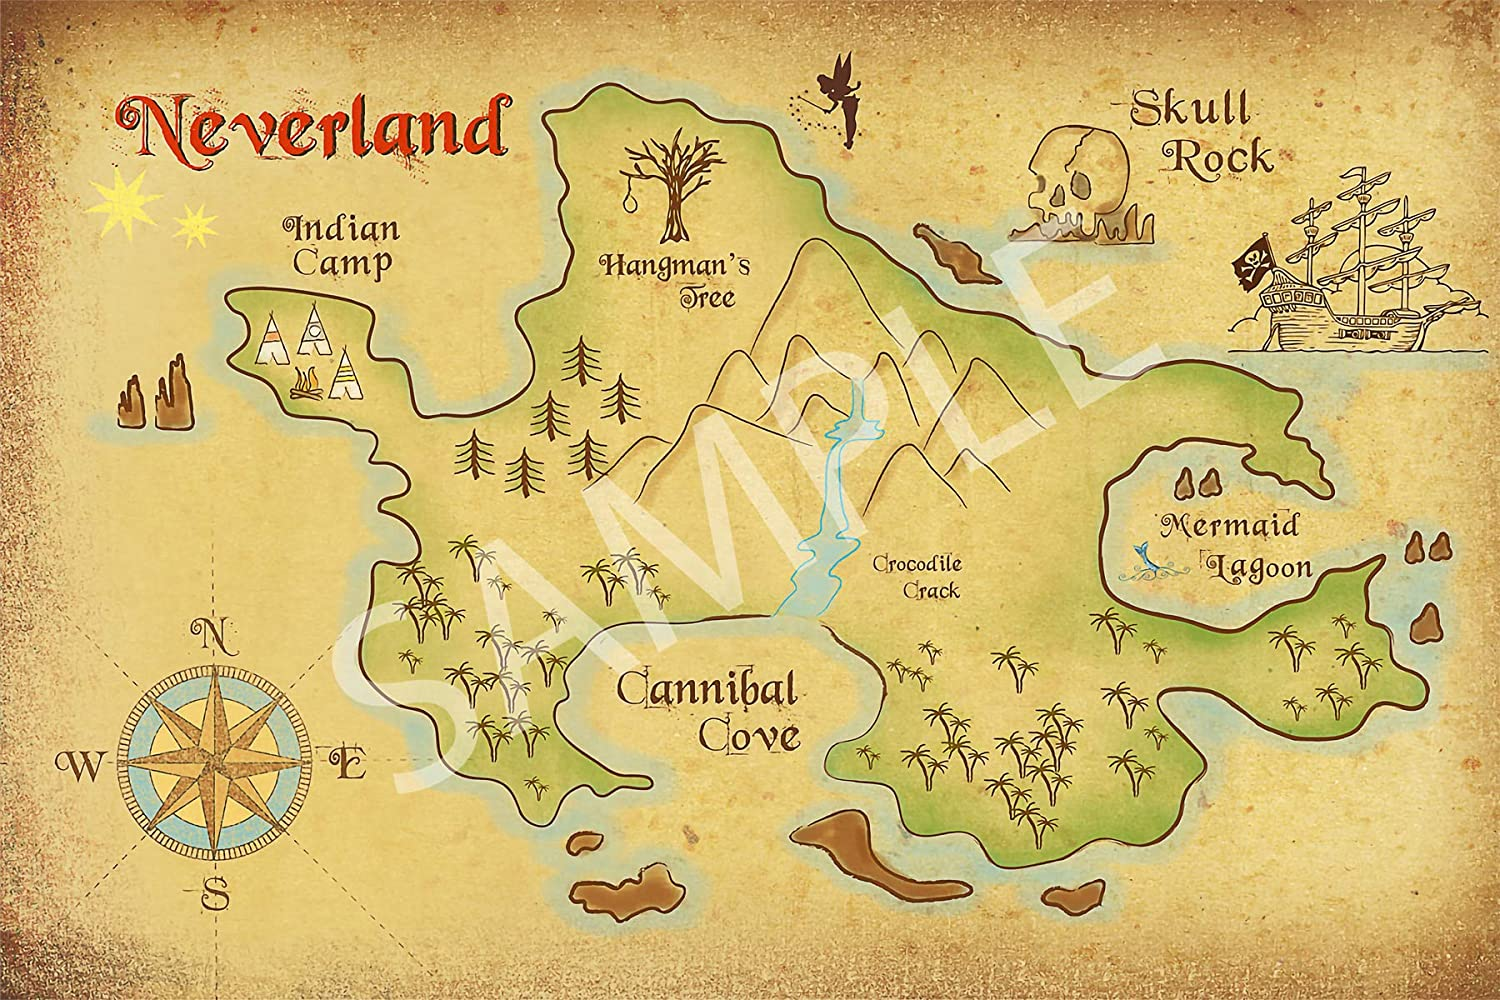 Map Of Neverland Amazon.com: Best Print Store   Disney Inspired, Peter Pan